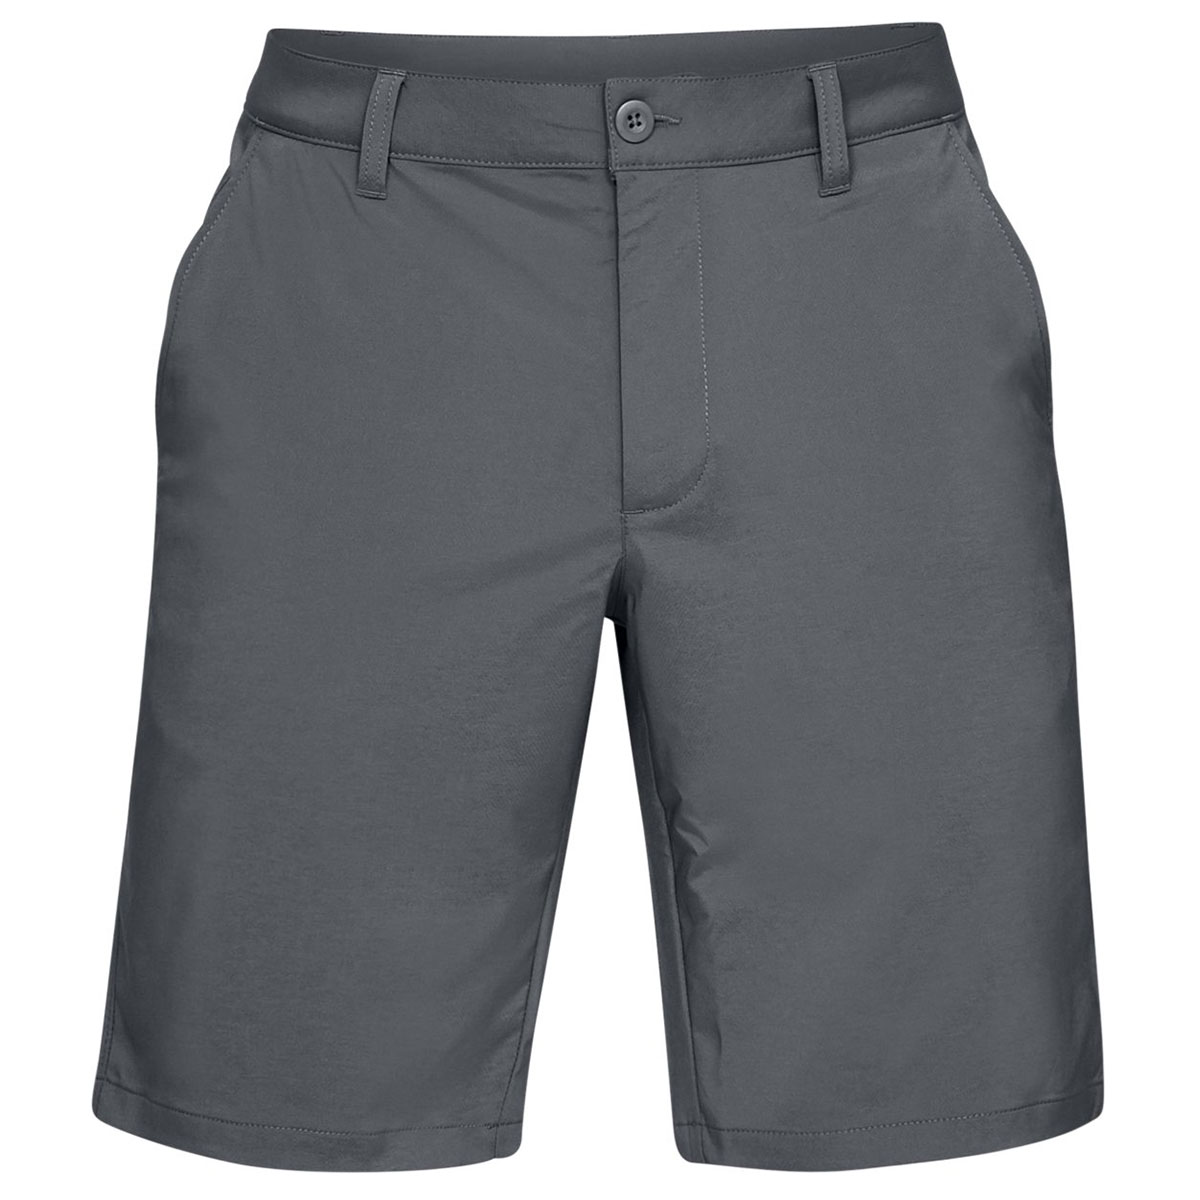 Under-Armour-Mens-2019-EU-Tech-Stretch-Soft-Tapered-Fitted-Golf-Shorts Indexbild 12